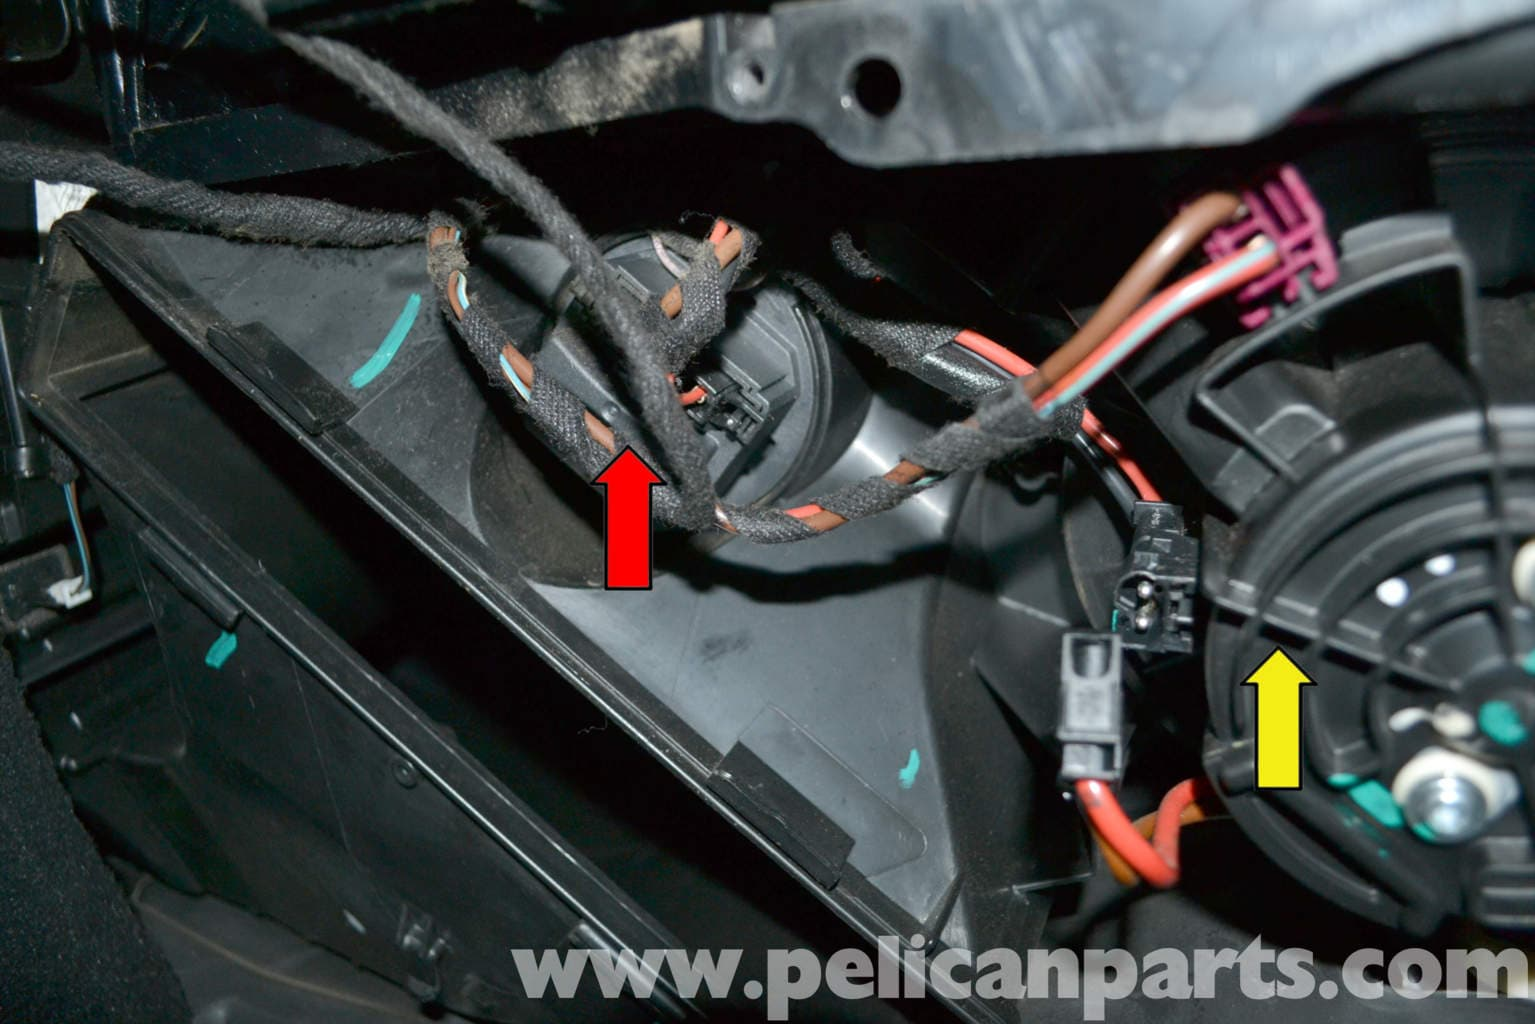 Mercedes Benz W204 Blower Motor Resistor Replacement